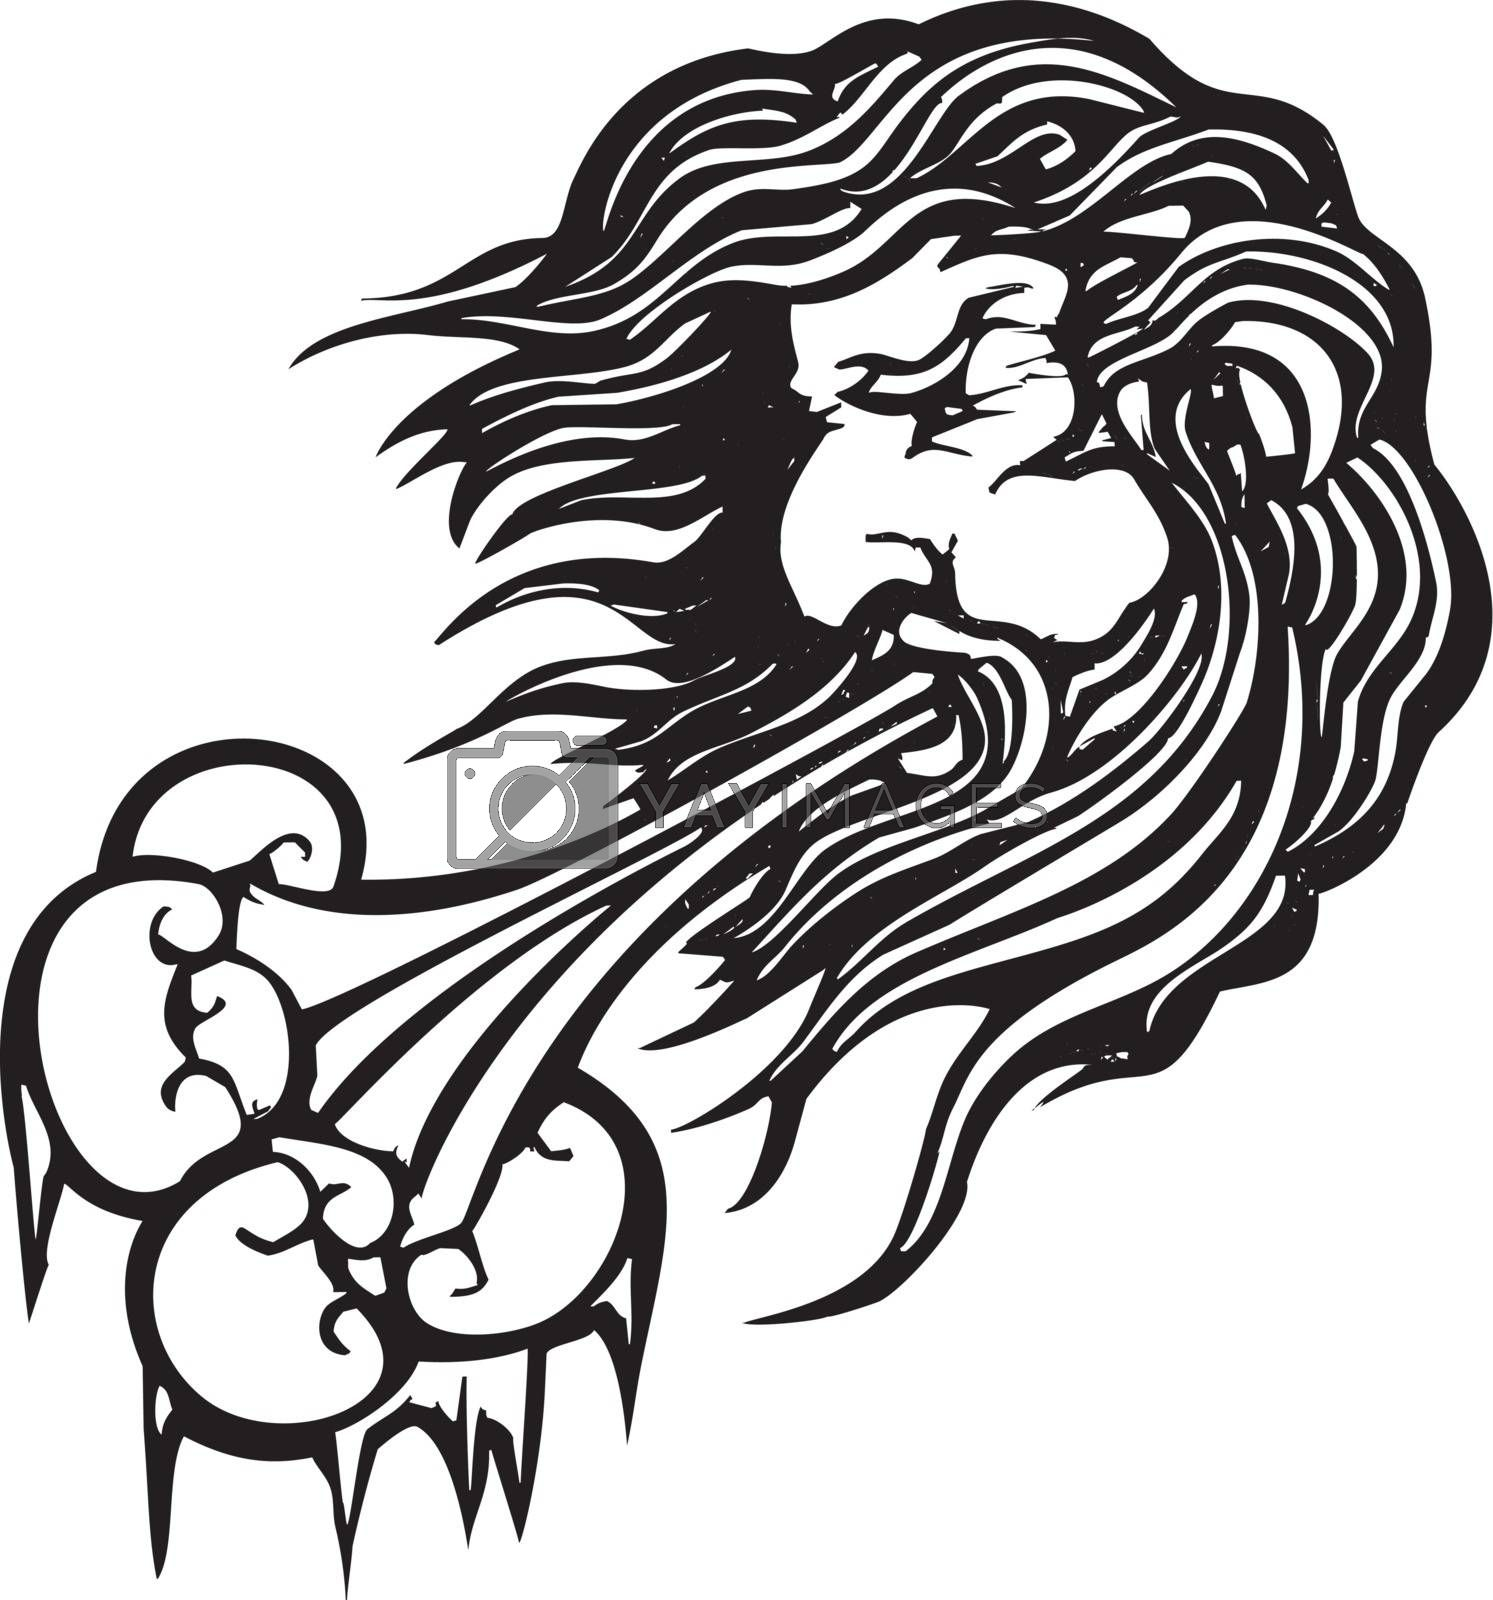 Woodcut style image of the the north wind face blowing cold air.